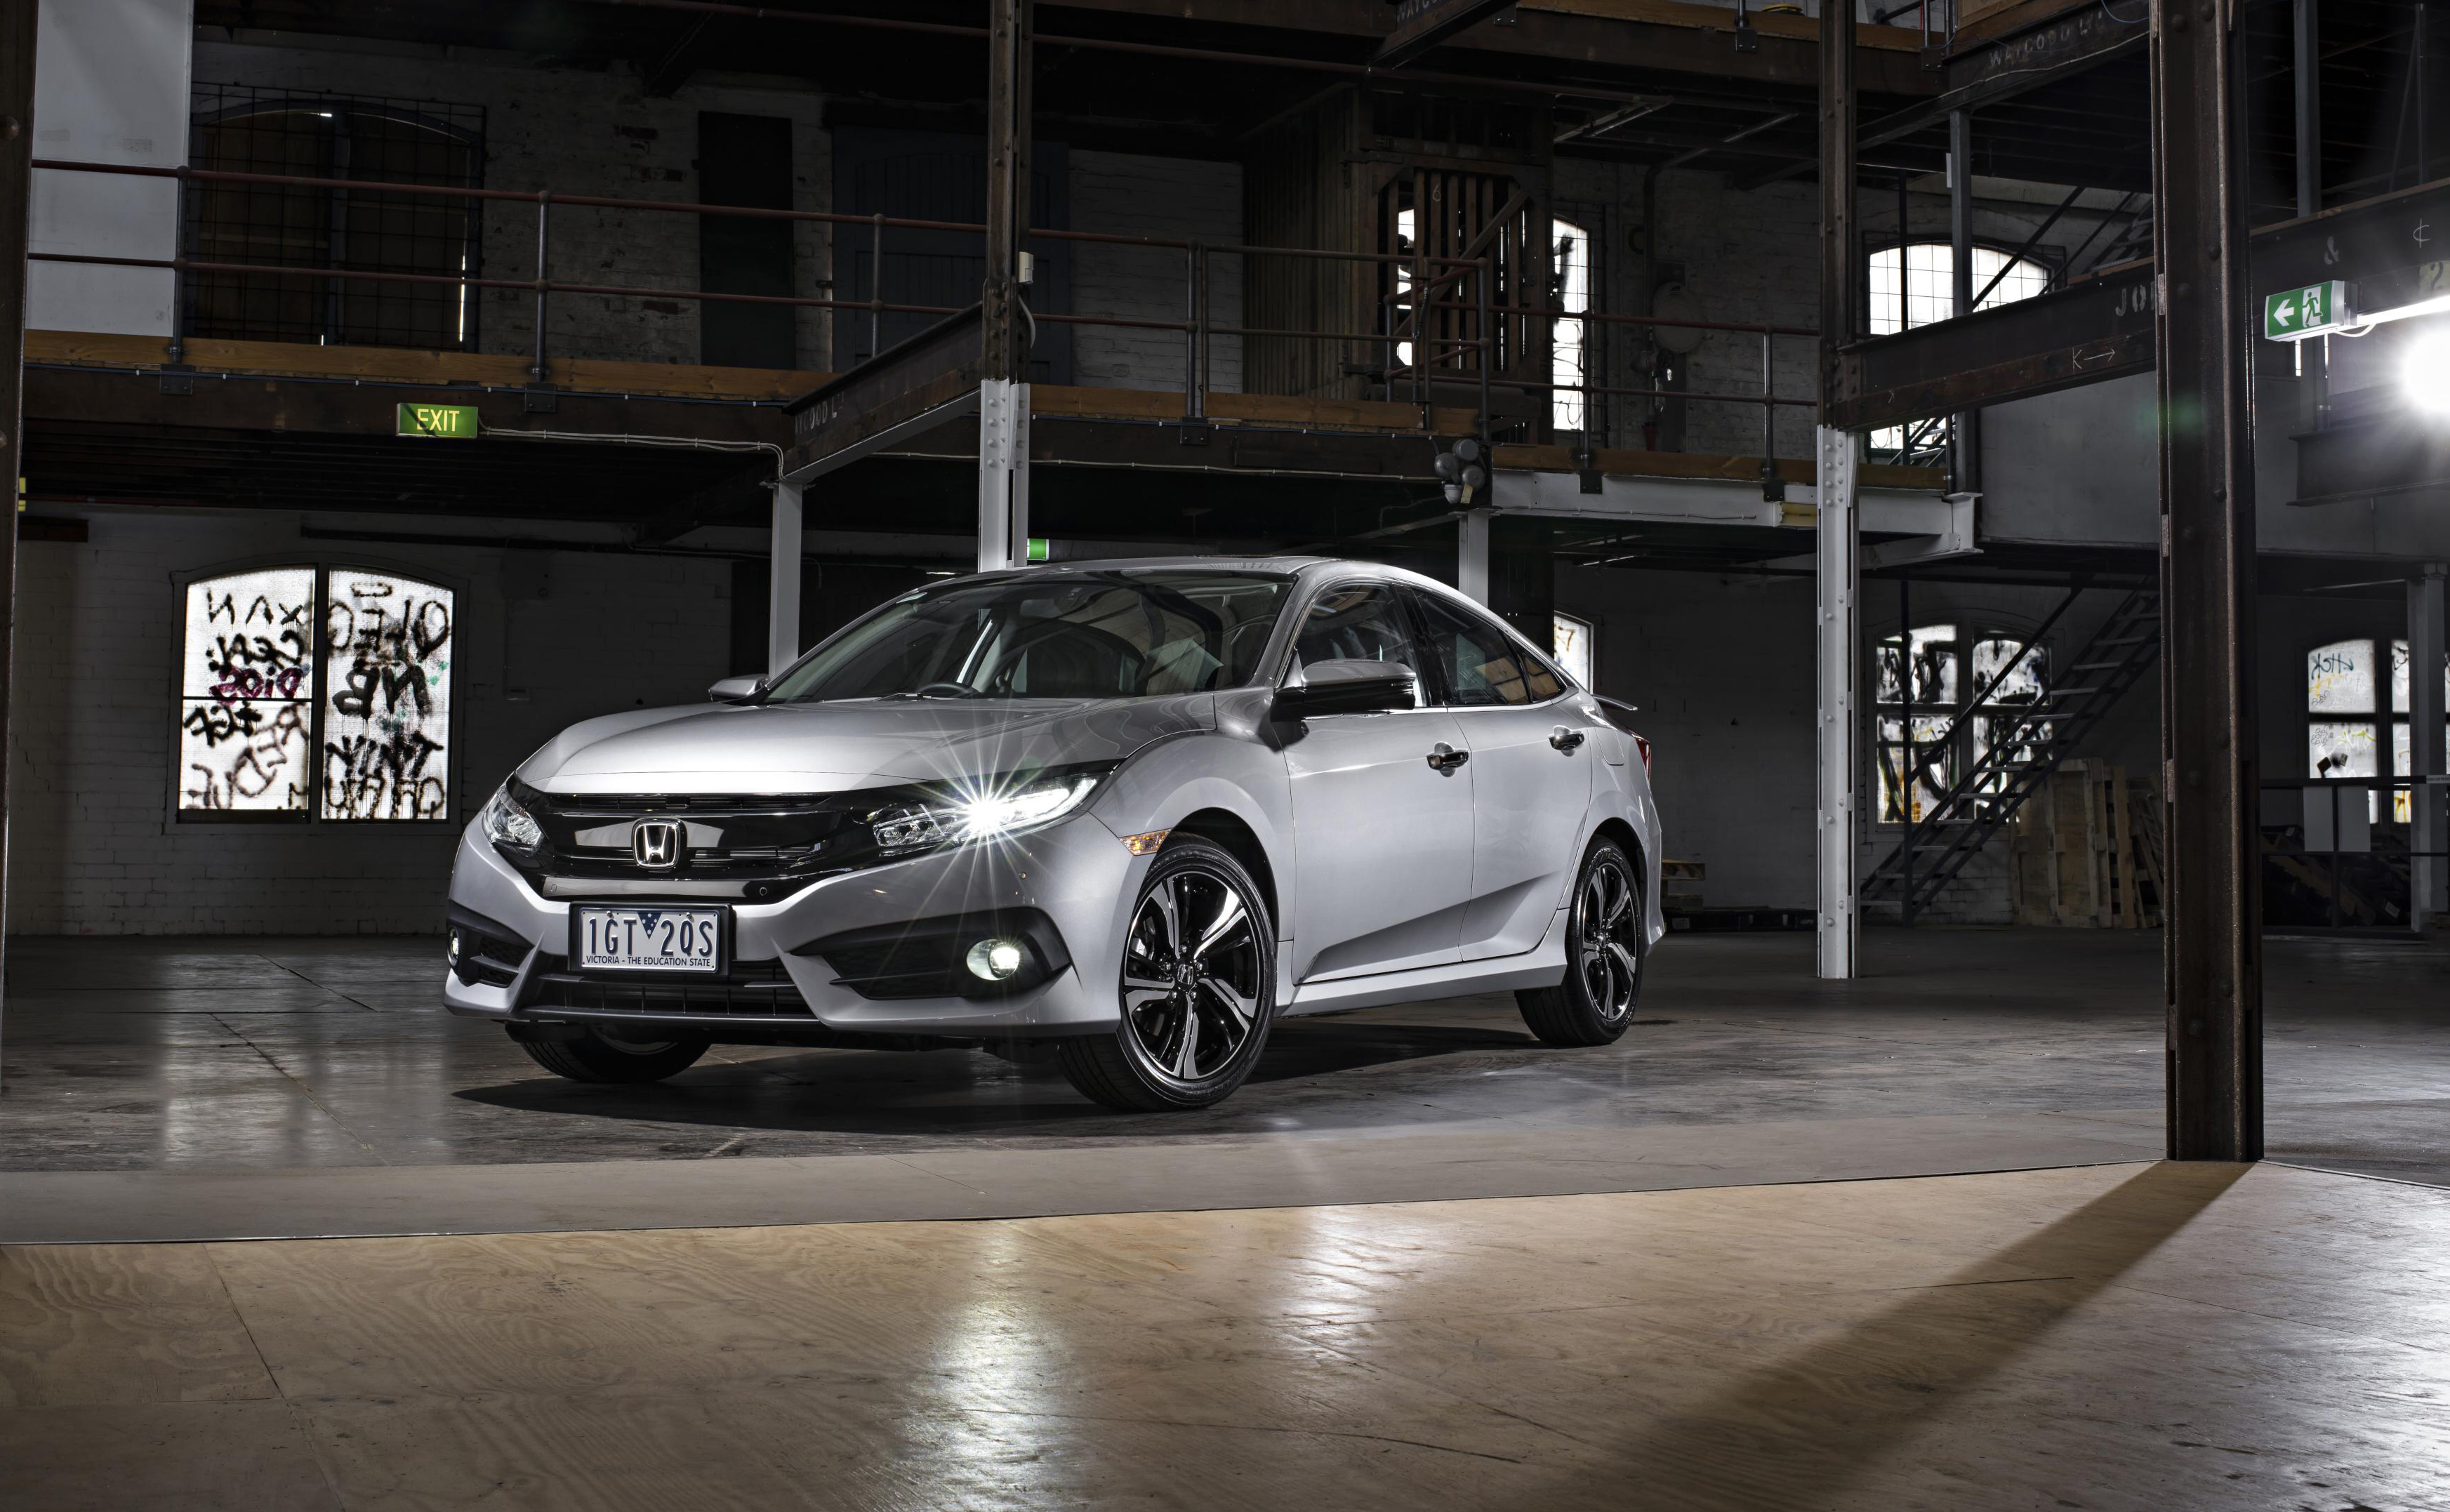 wallpaper.wiki-honda-civic-sedan-rs-2016-photos-pic-wpb0012624